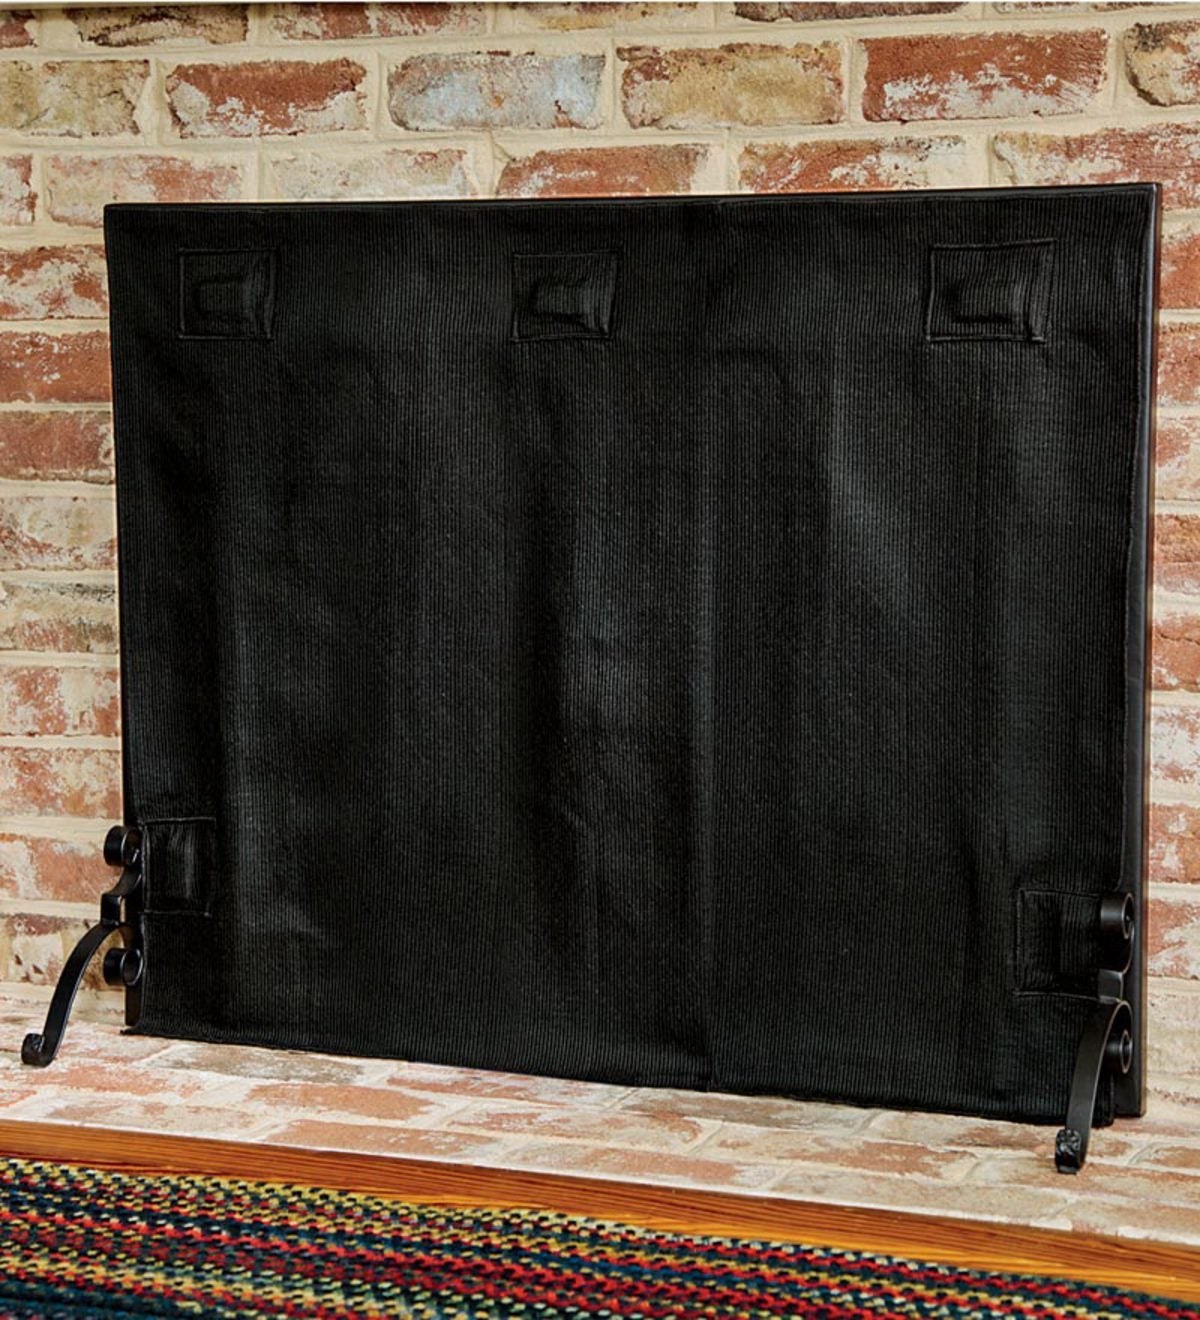 Hearth Covers: Large Pavenex® Fireplace Blanket Stops Overnight Heat Loss